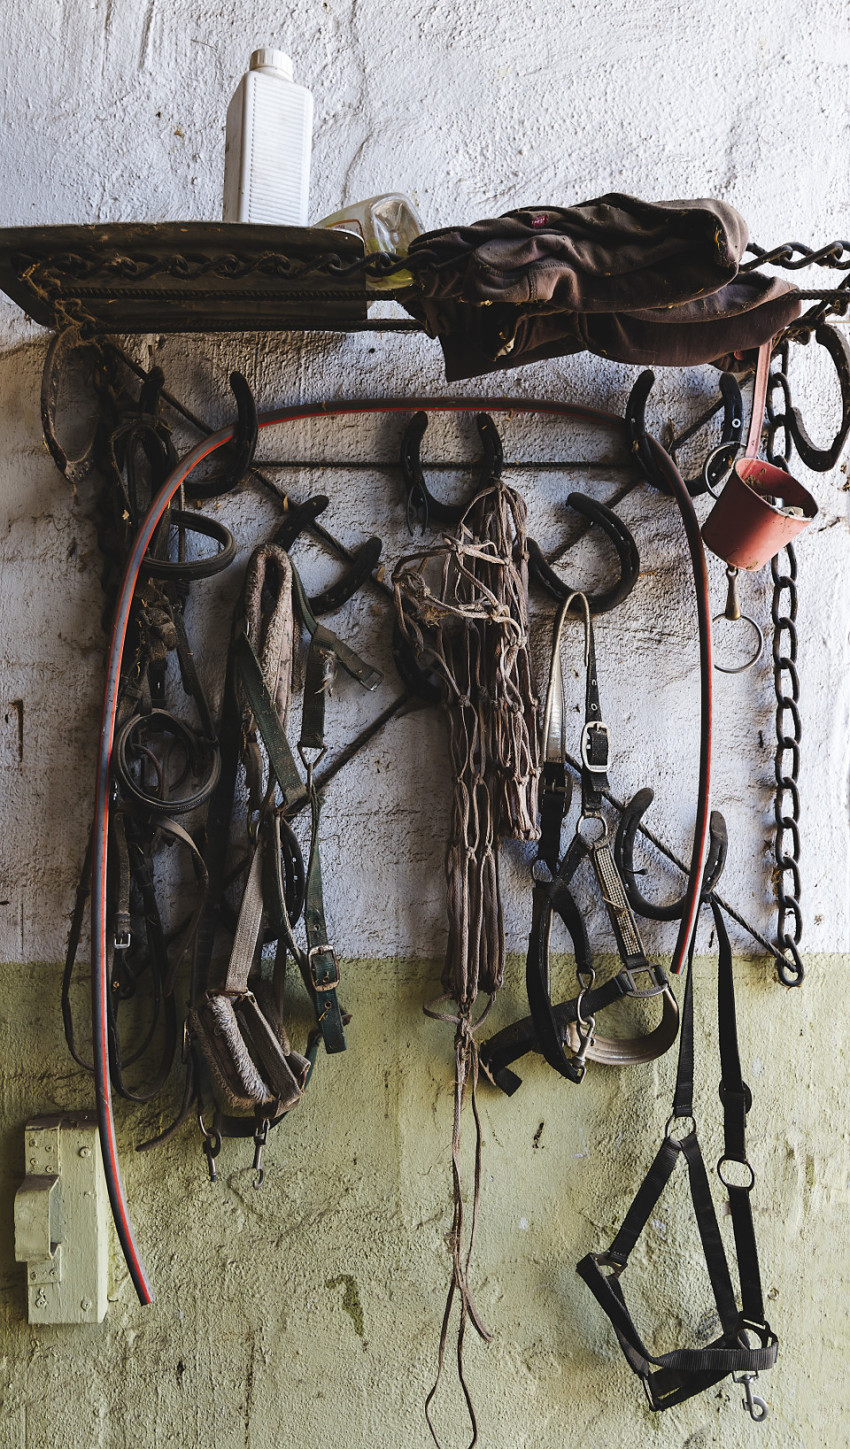 riding equipment on a wall